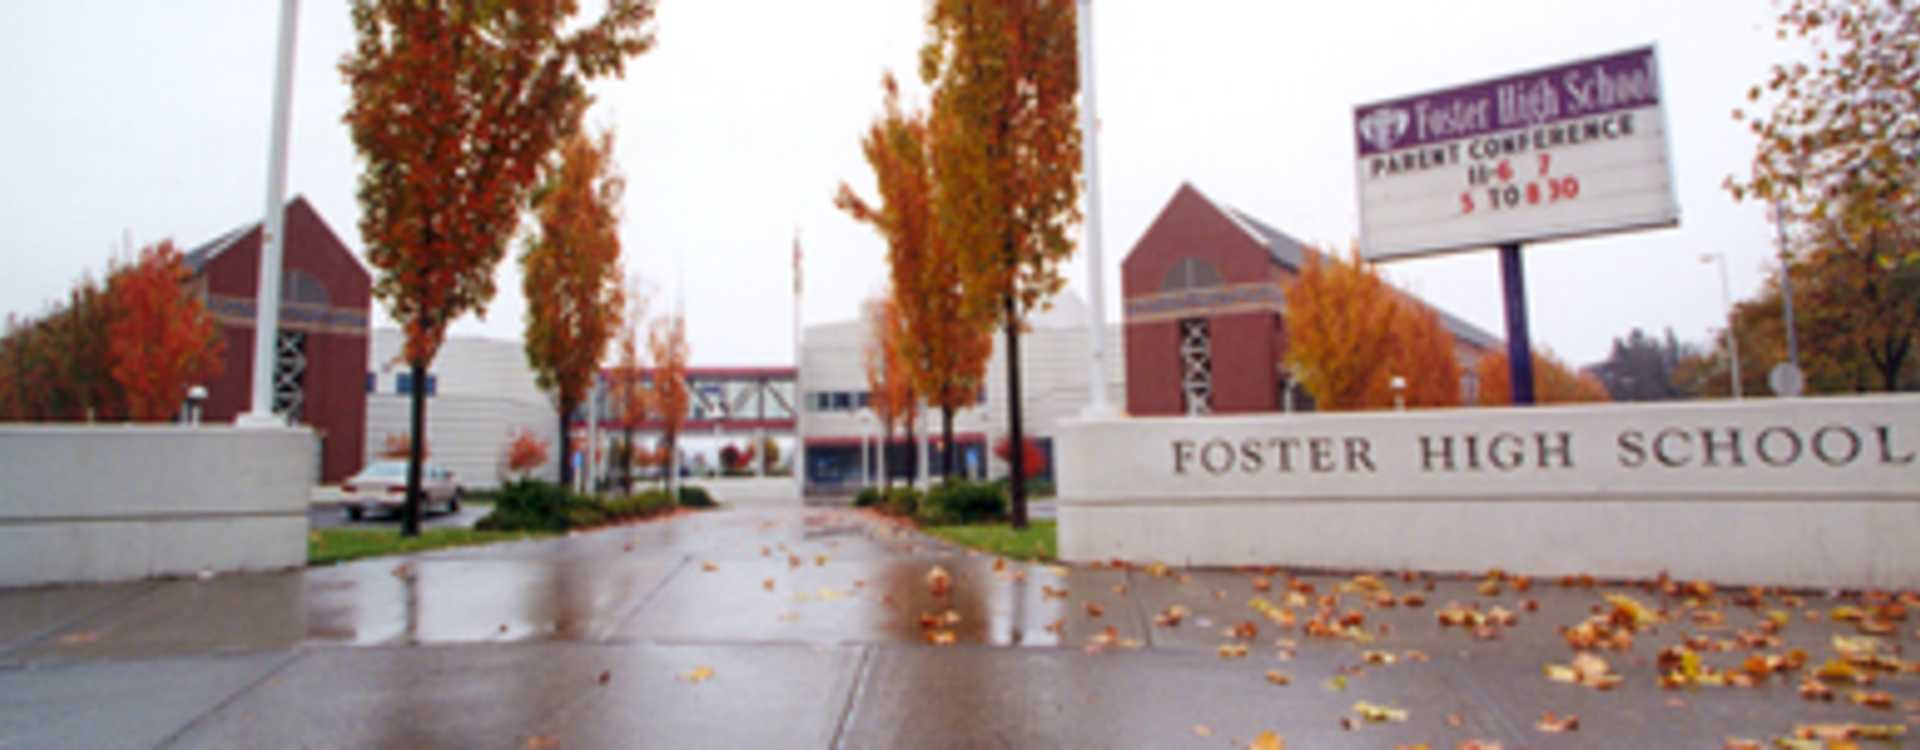 meeting-facility-Foster_High_School_Performing_Arts_Center_Meeting_Facility.jpg